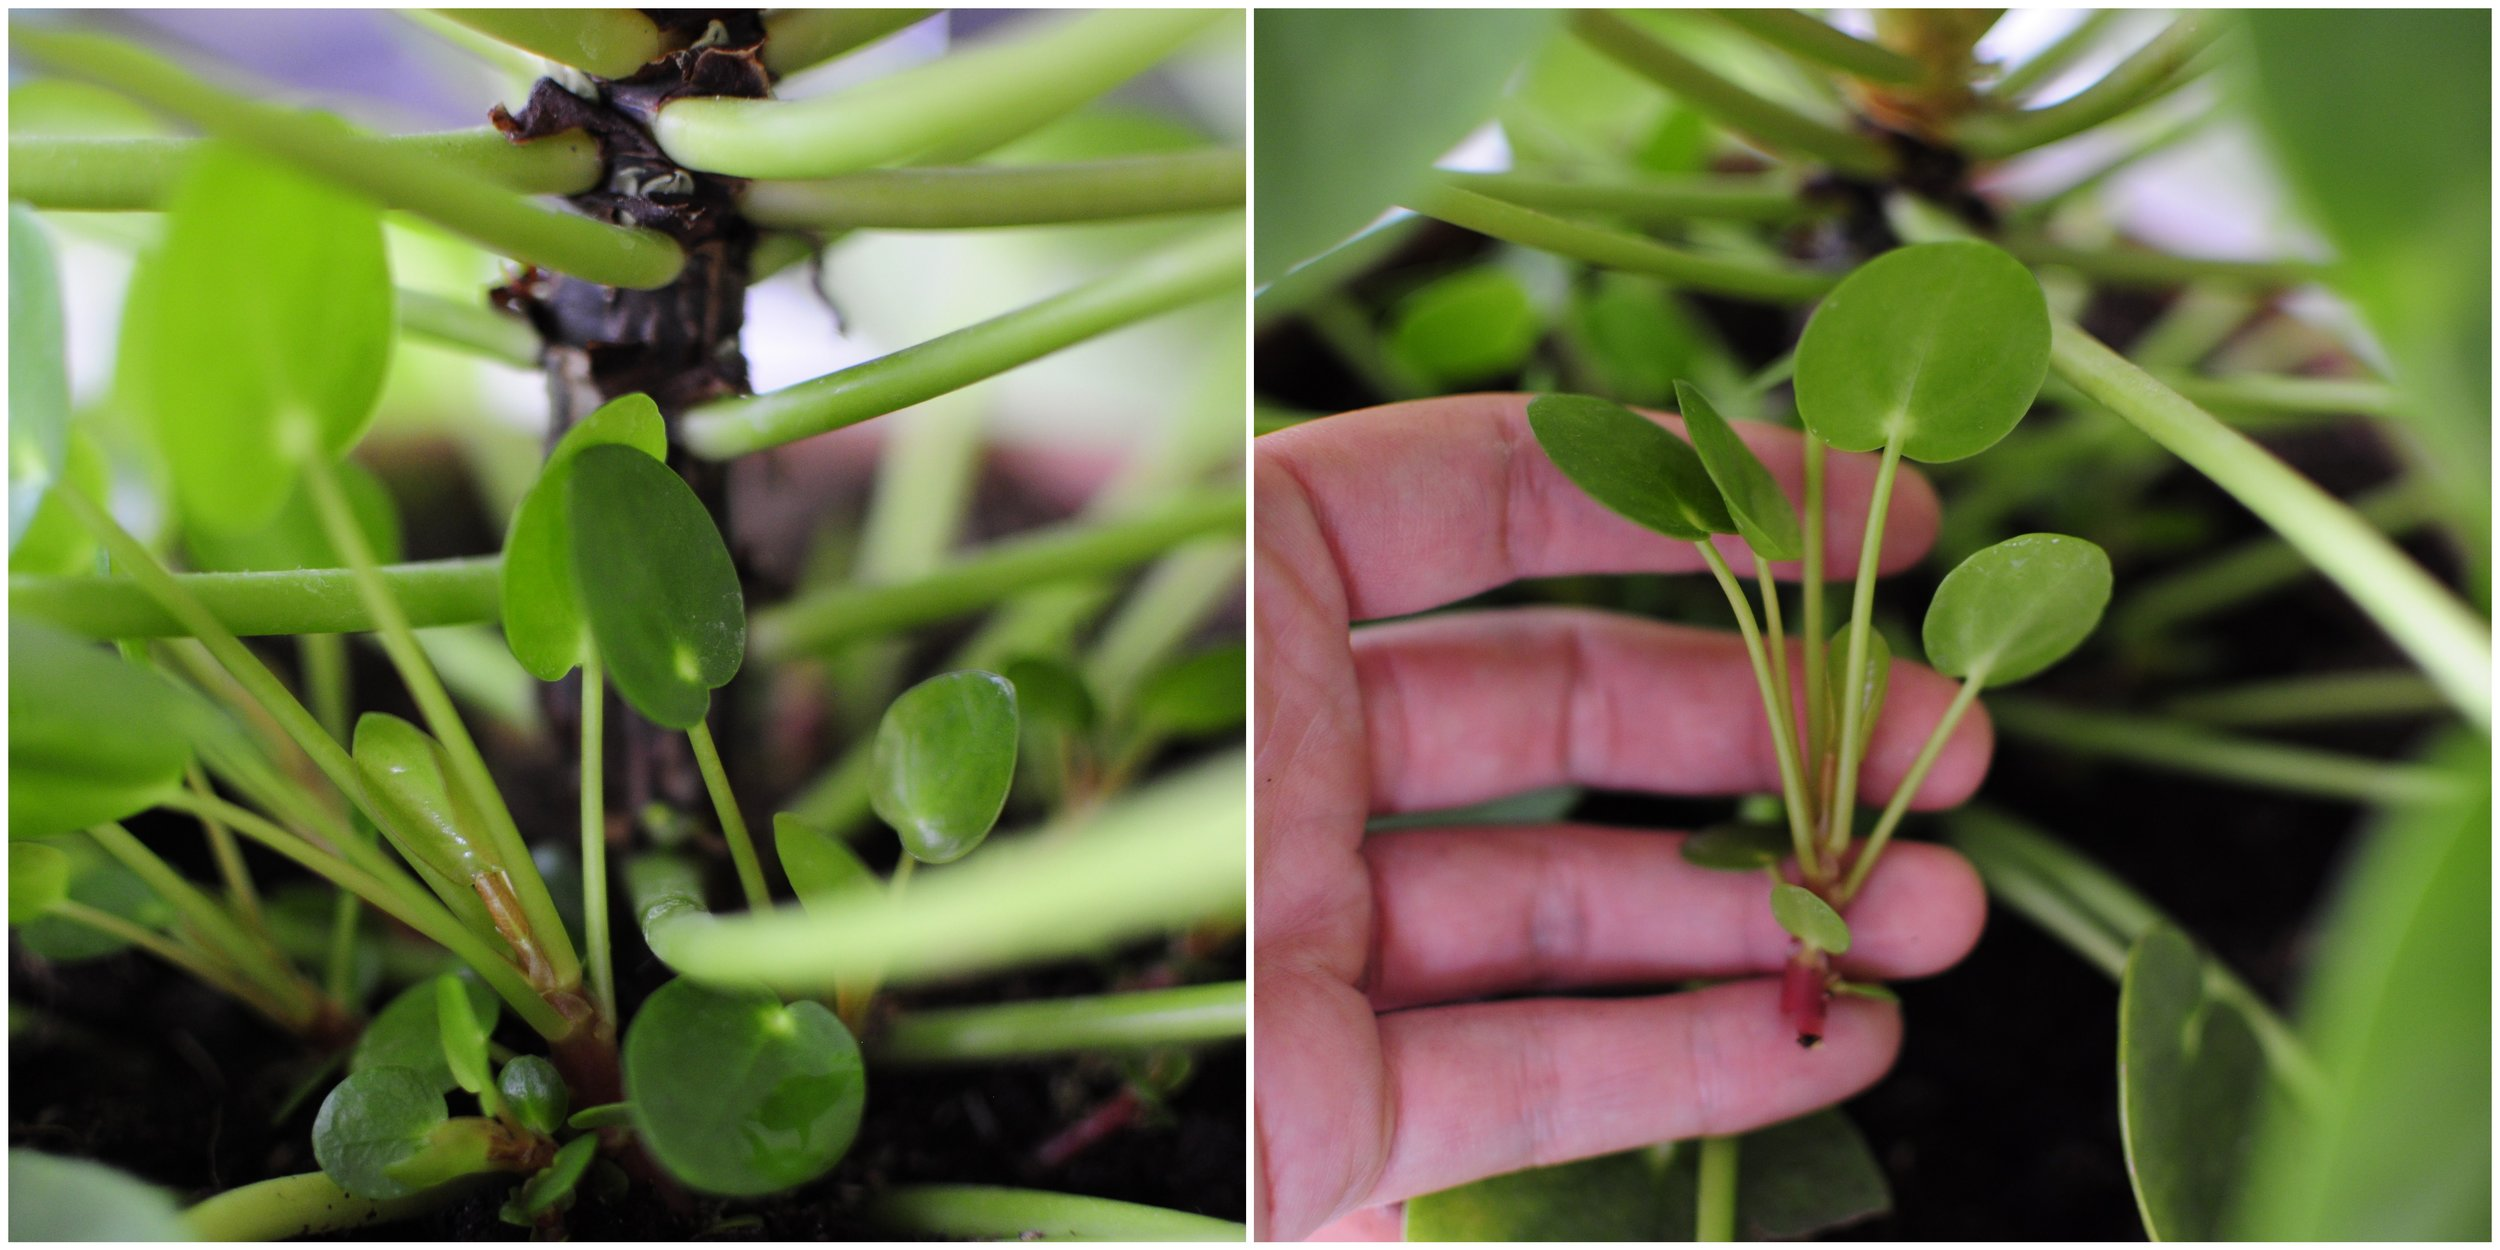 Pilea cuttings from the stem.